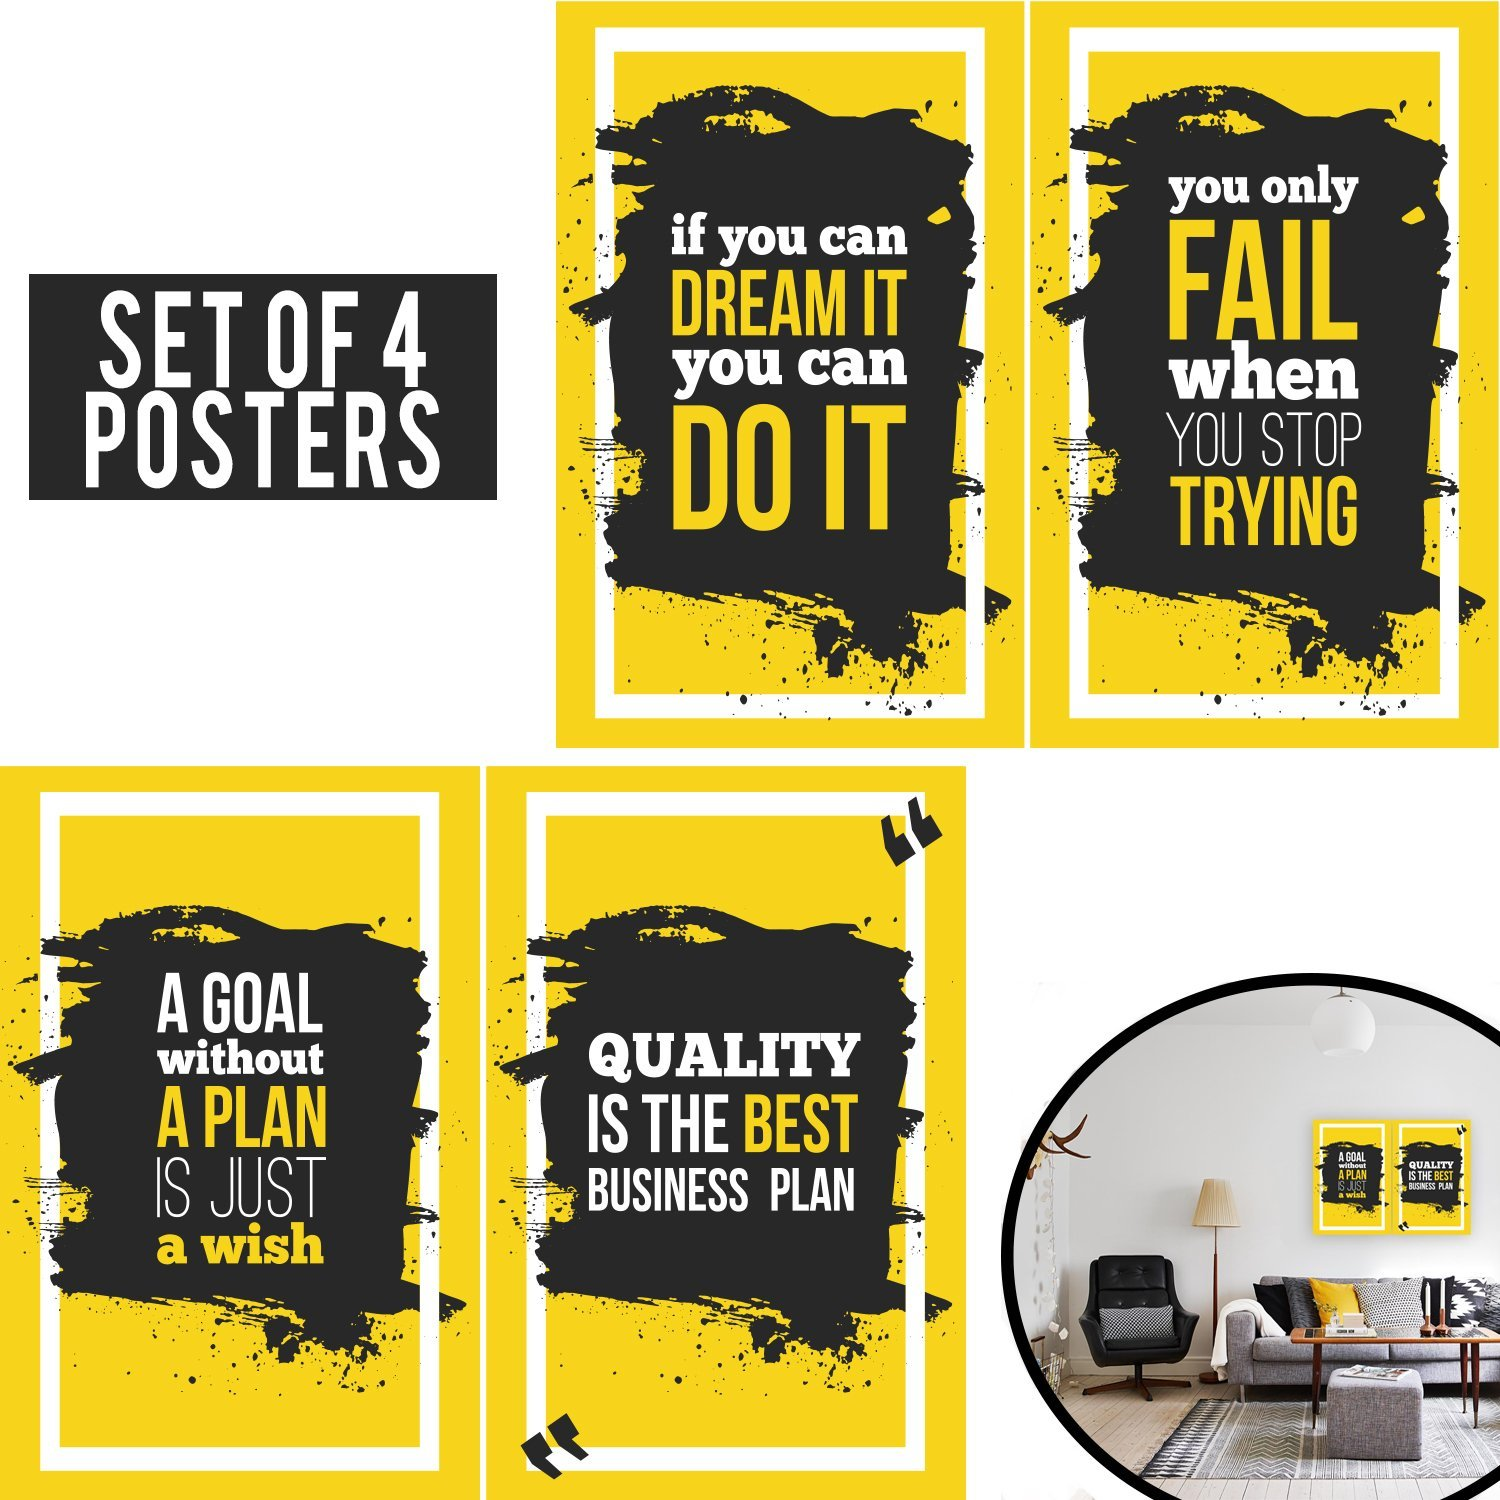 Amazon.com: Limited Edition: Yellow Posters Set of four 11x17 ...